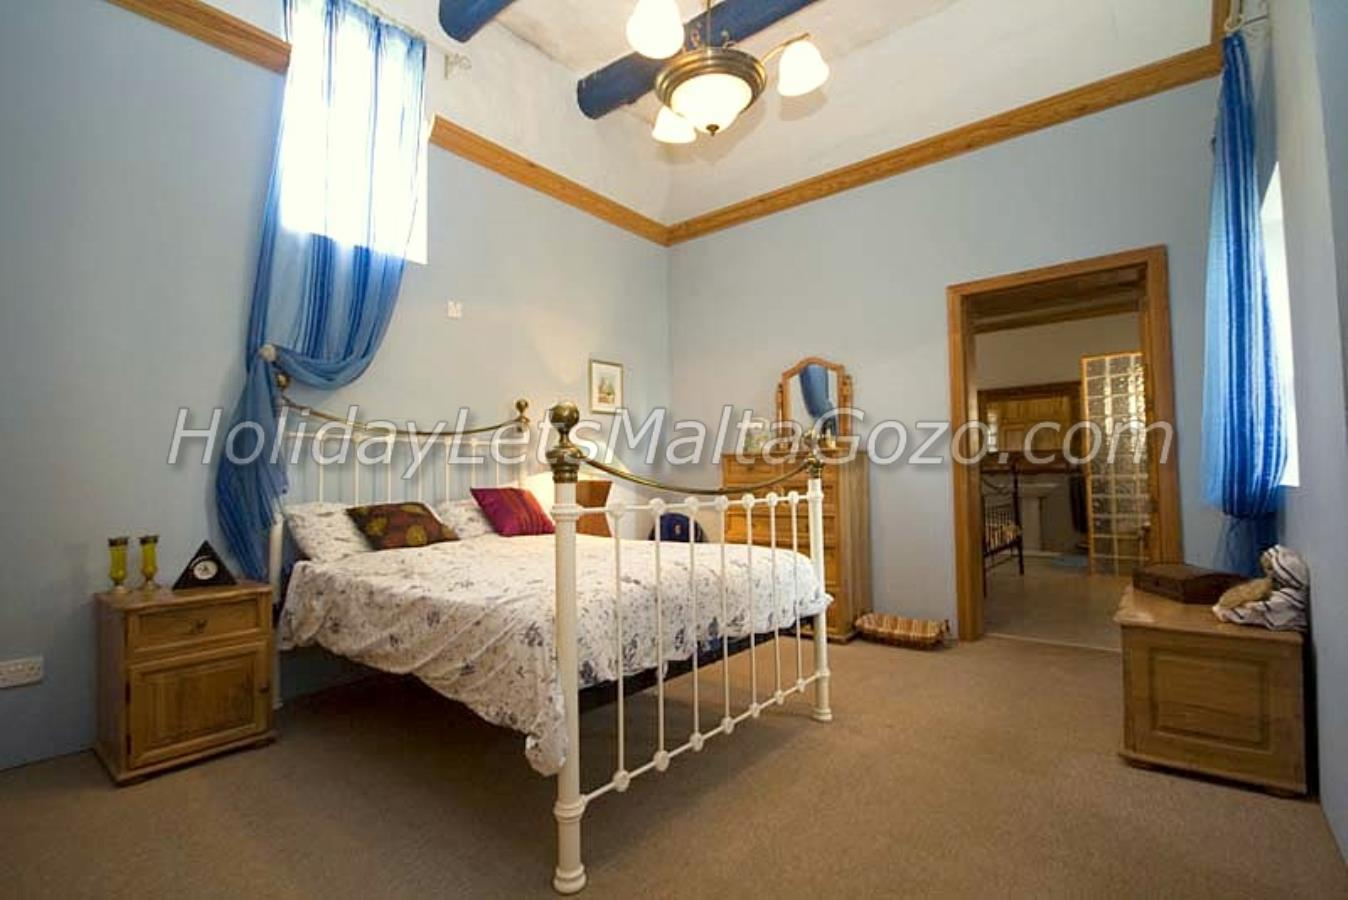 Bedroom with adjoining Bedroom with Bathroom